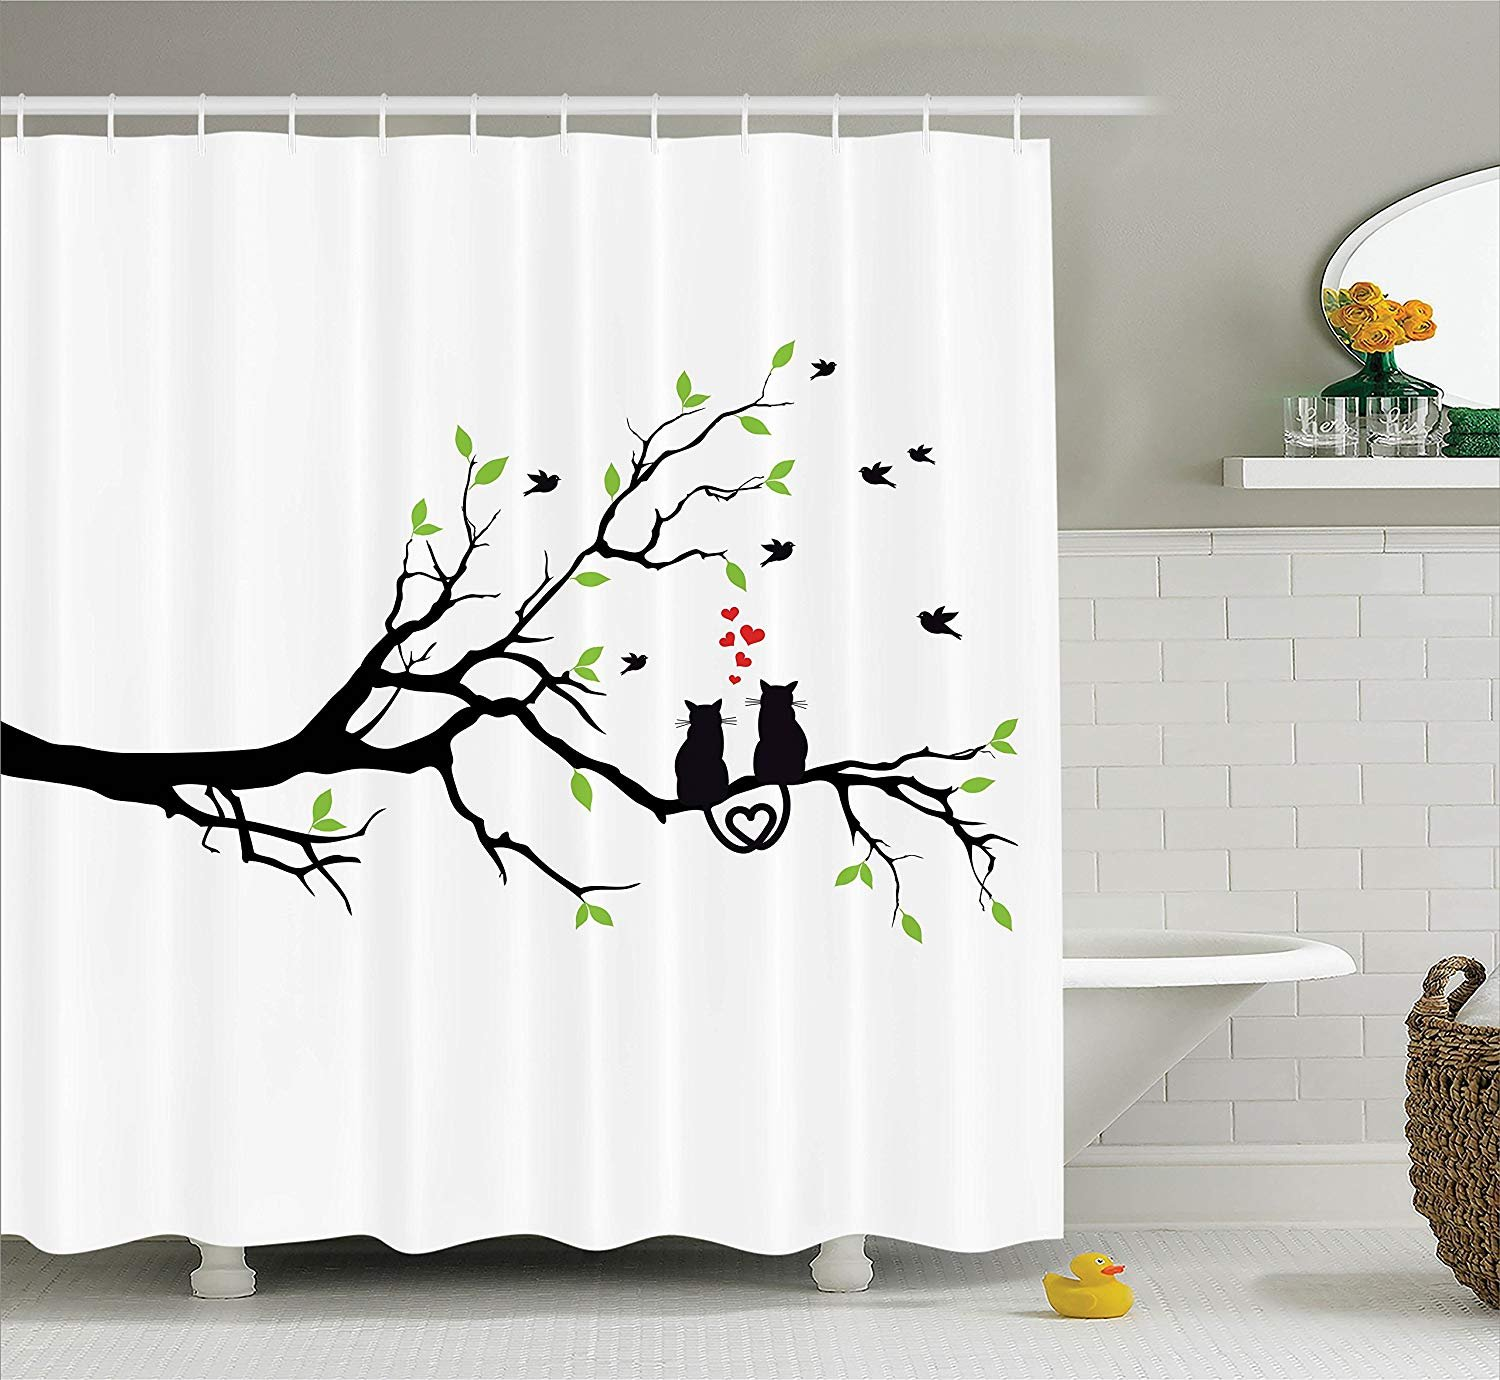 Ambesonne Cat Lover Decor Collection, Cats in Love on Tree Branch with Flying Birds Nature Romance Illustration, Polyester Fabric Bathroom Shower Curtain Set with Hooks, Green Black White